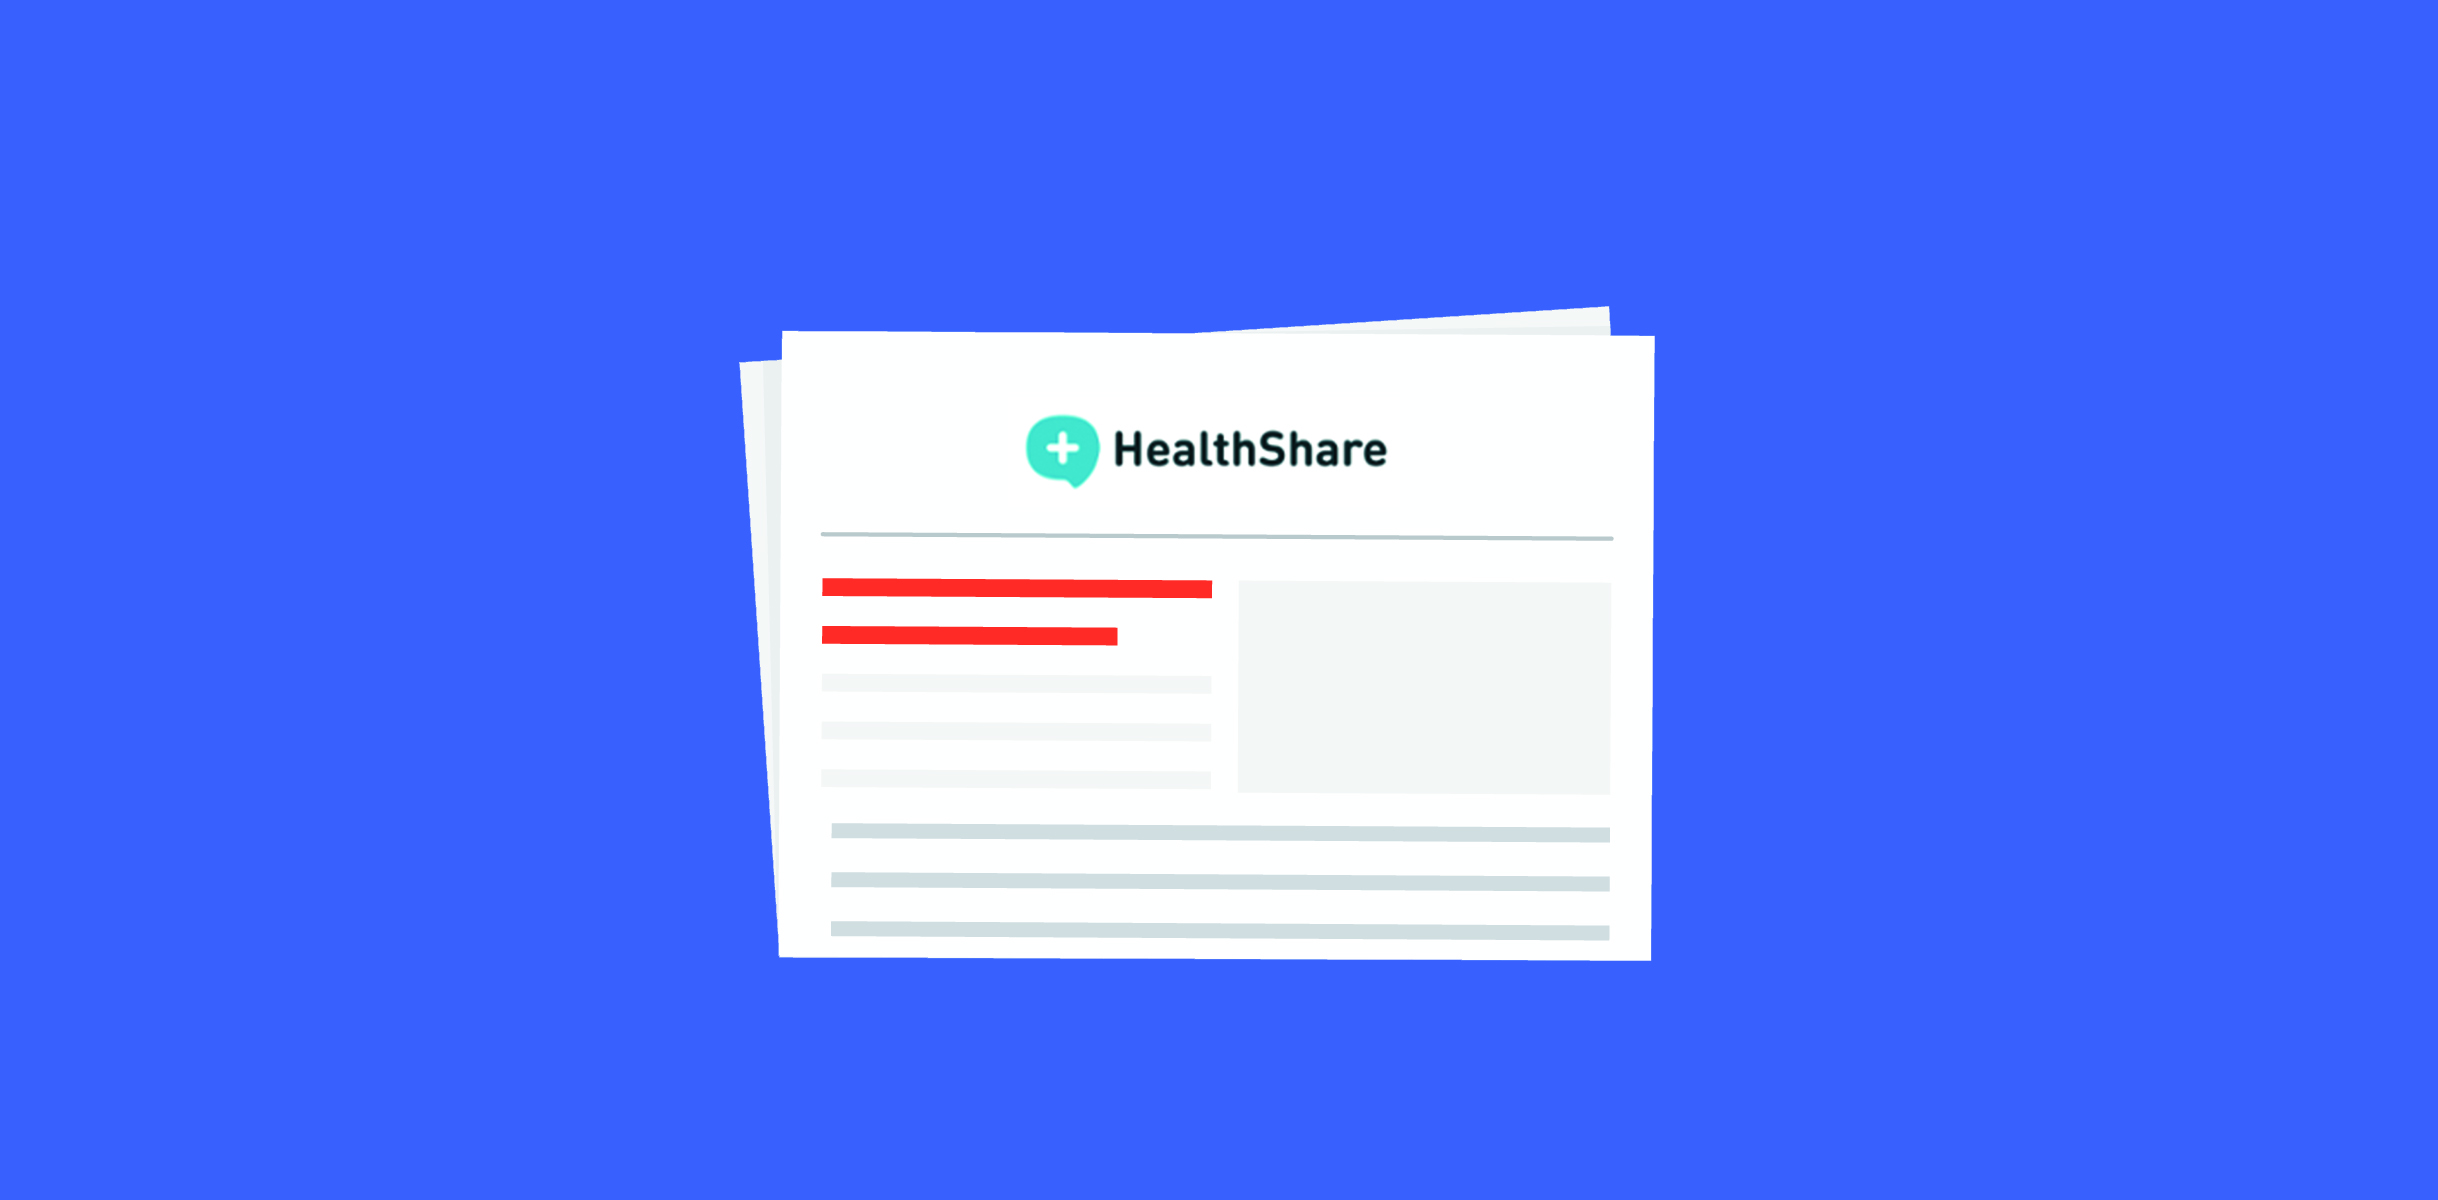 HealthShare launches COPD community with Boehringer Ingelheim